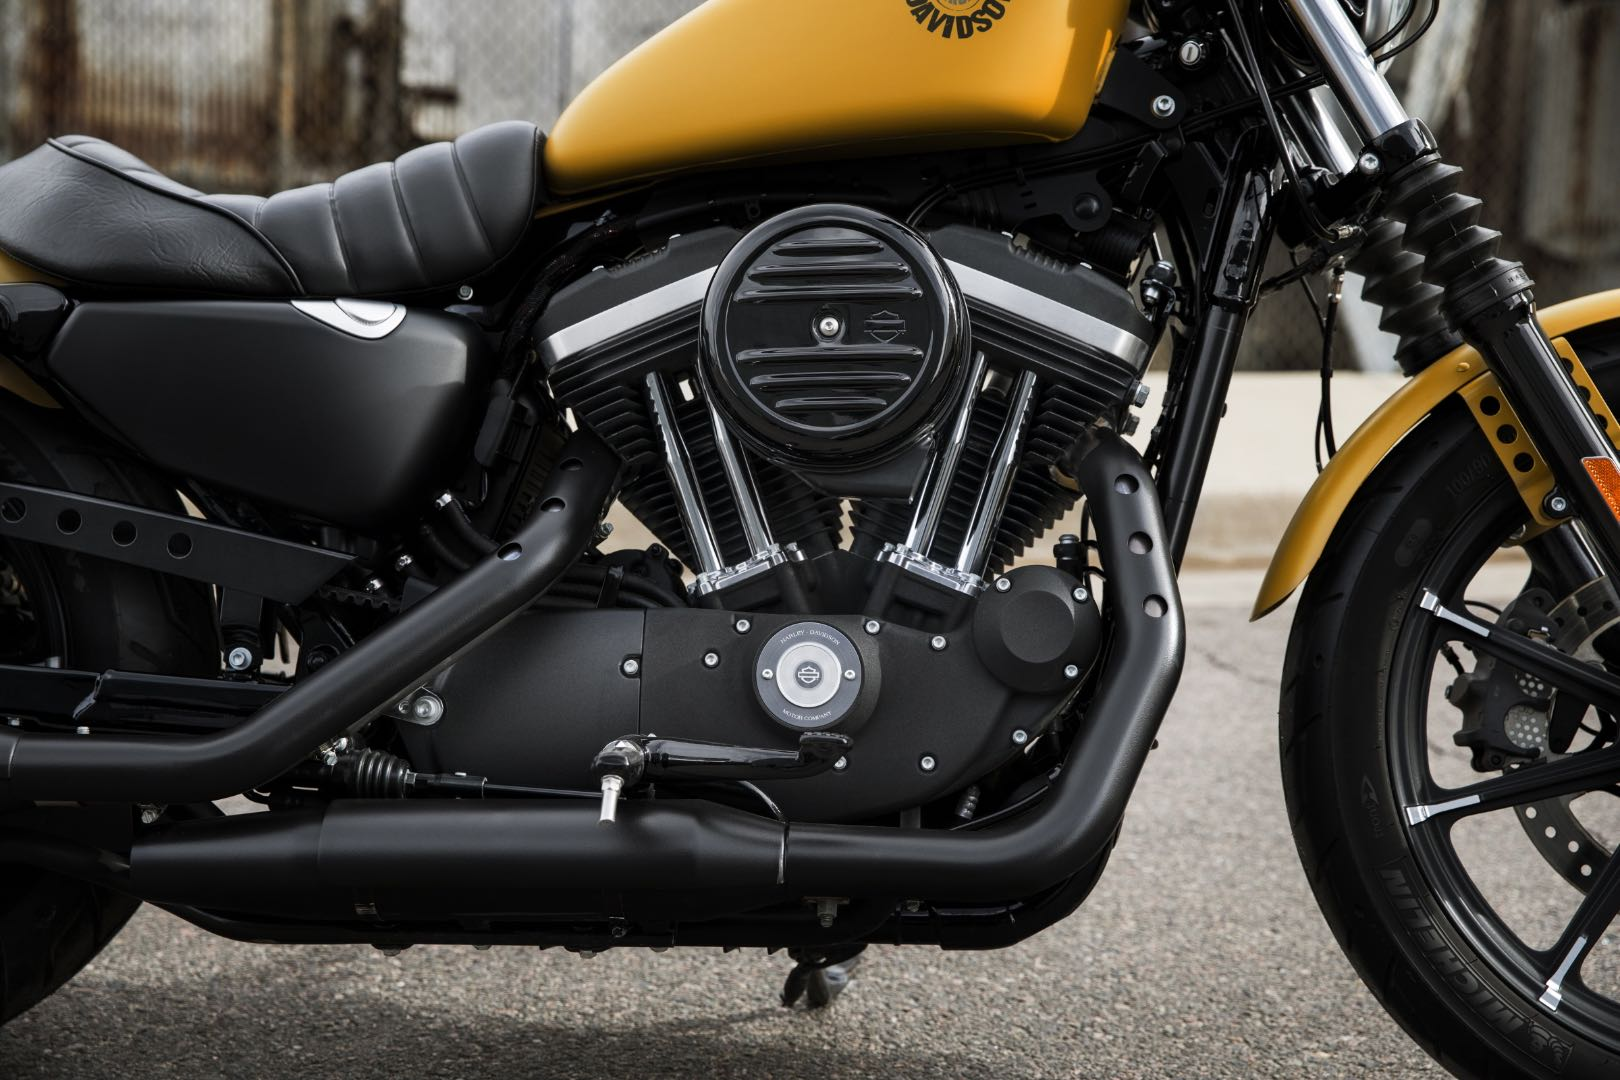 2020 Harley Davidson Iron 883 Buyer S Guide Specs Prices